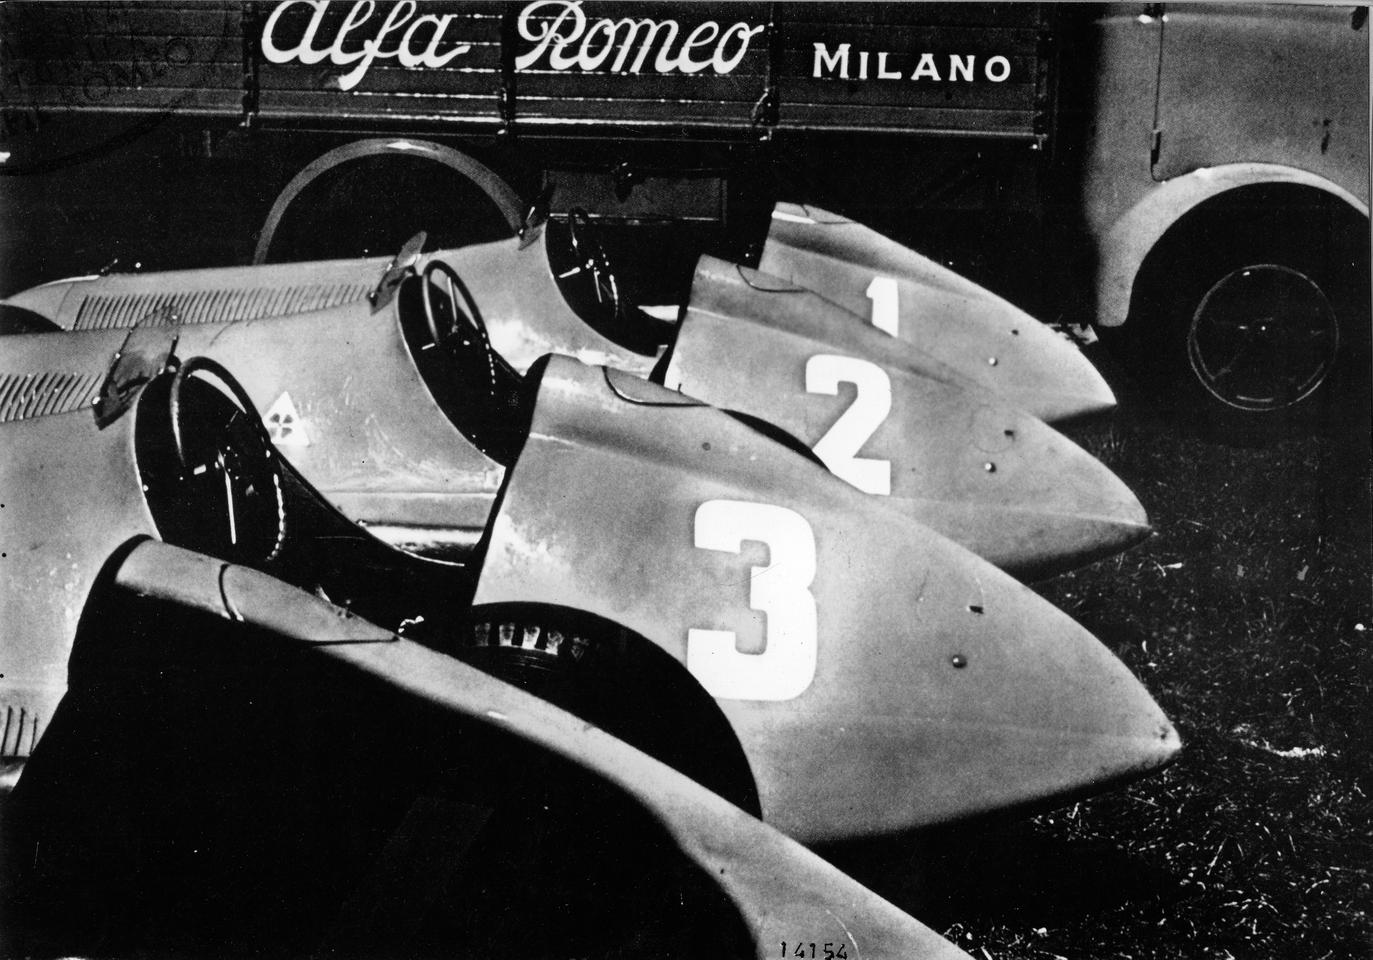 Alfa Romeo won the first nine races it contested in Formula One, taking the inaugural 1950 Championship and the 1951 title too